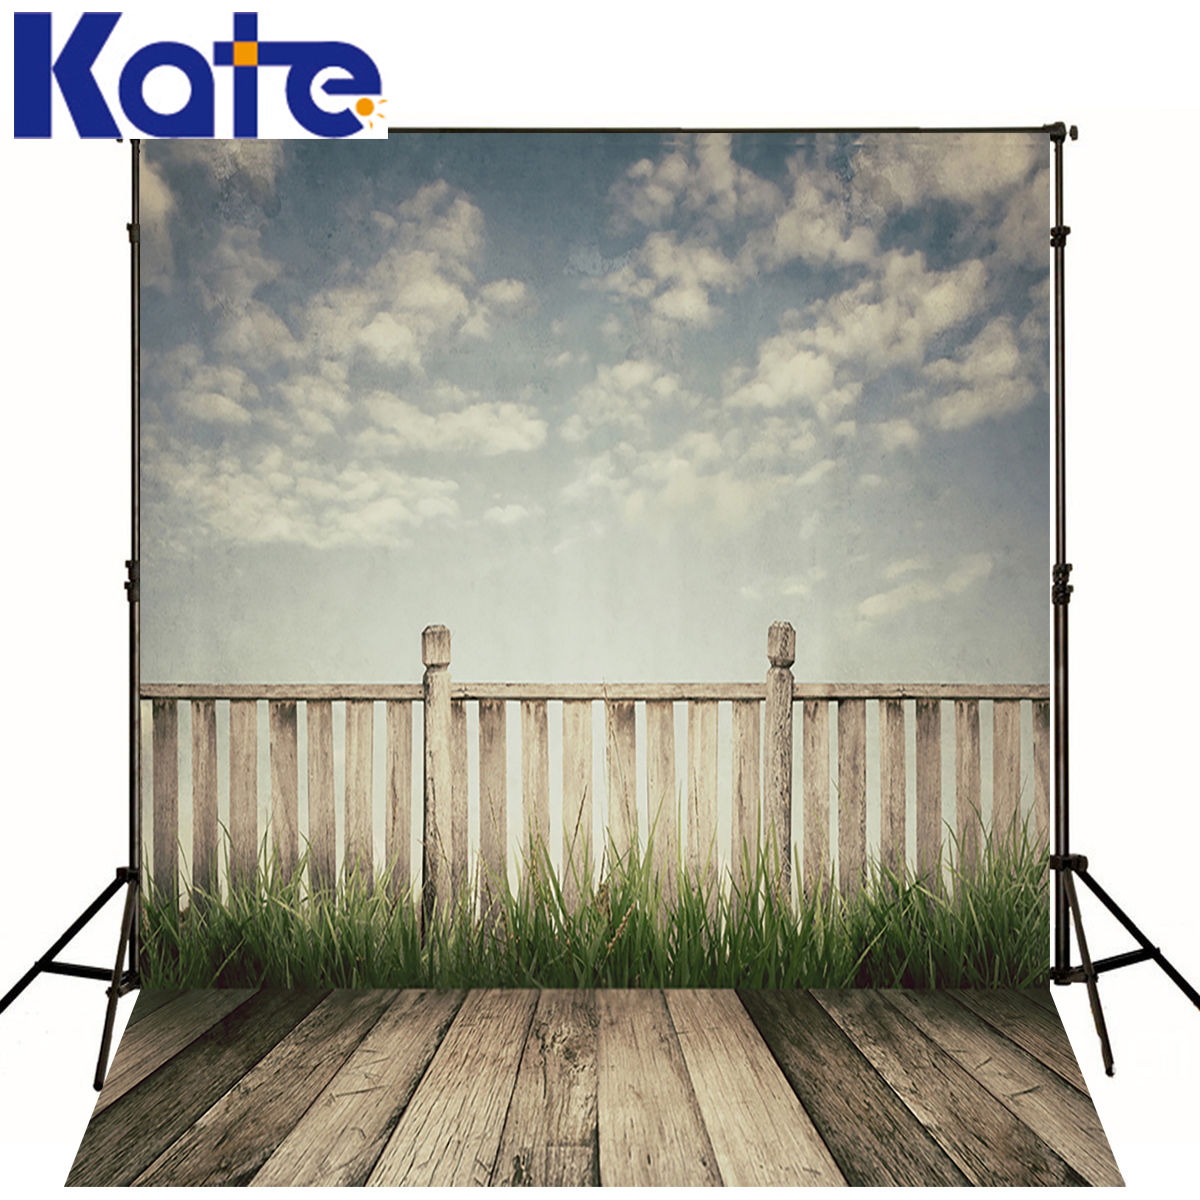 Kate Newborn Baby Background Railing Green Grass Photography Backdrop Dark Wood Texture Floor For Photo Shoot